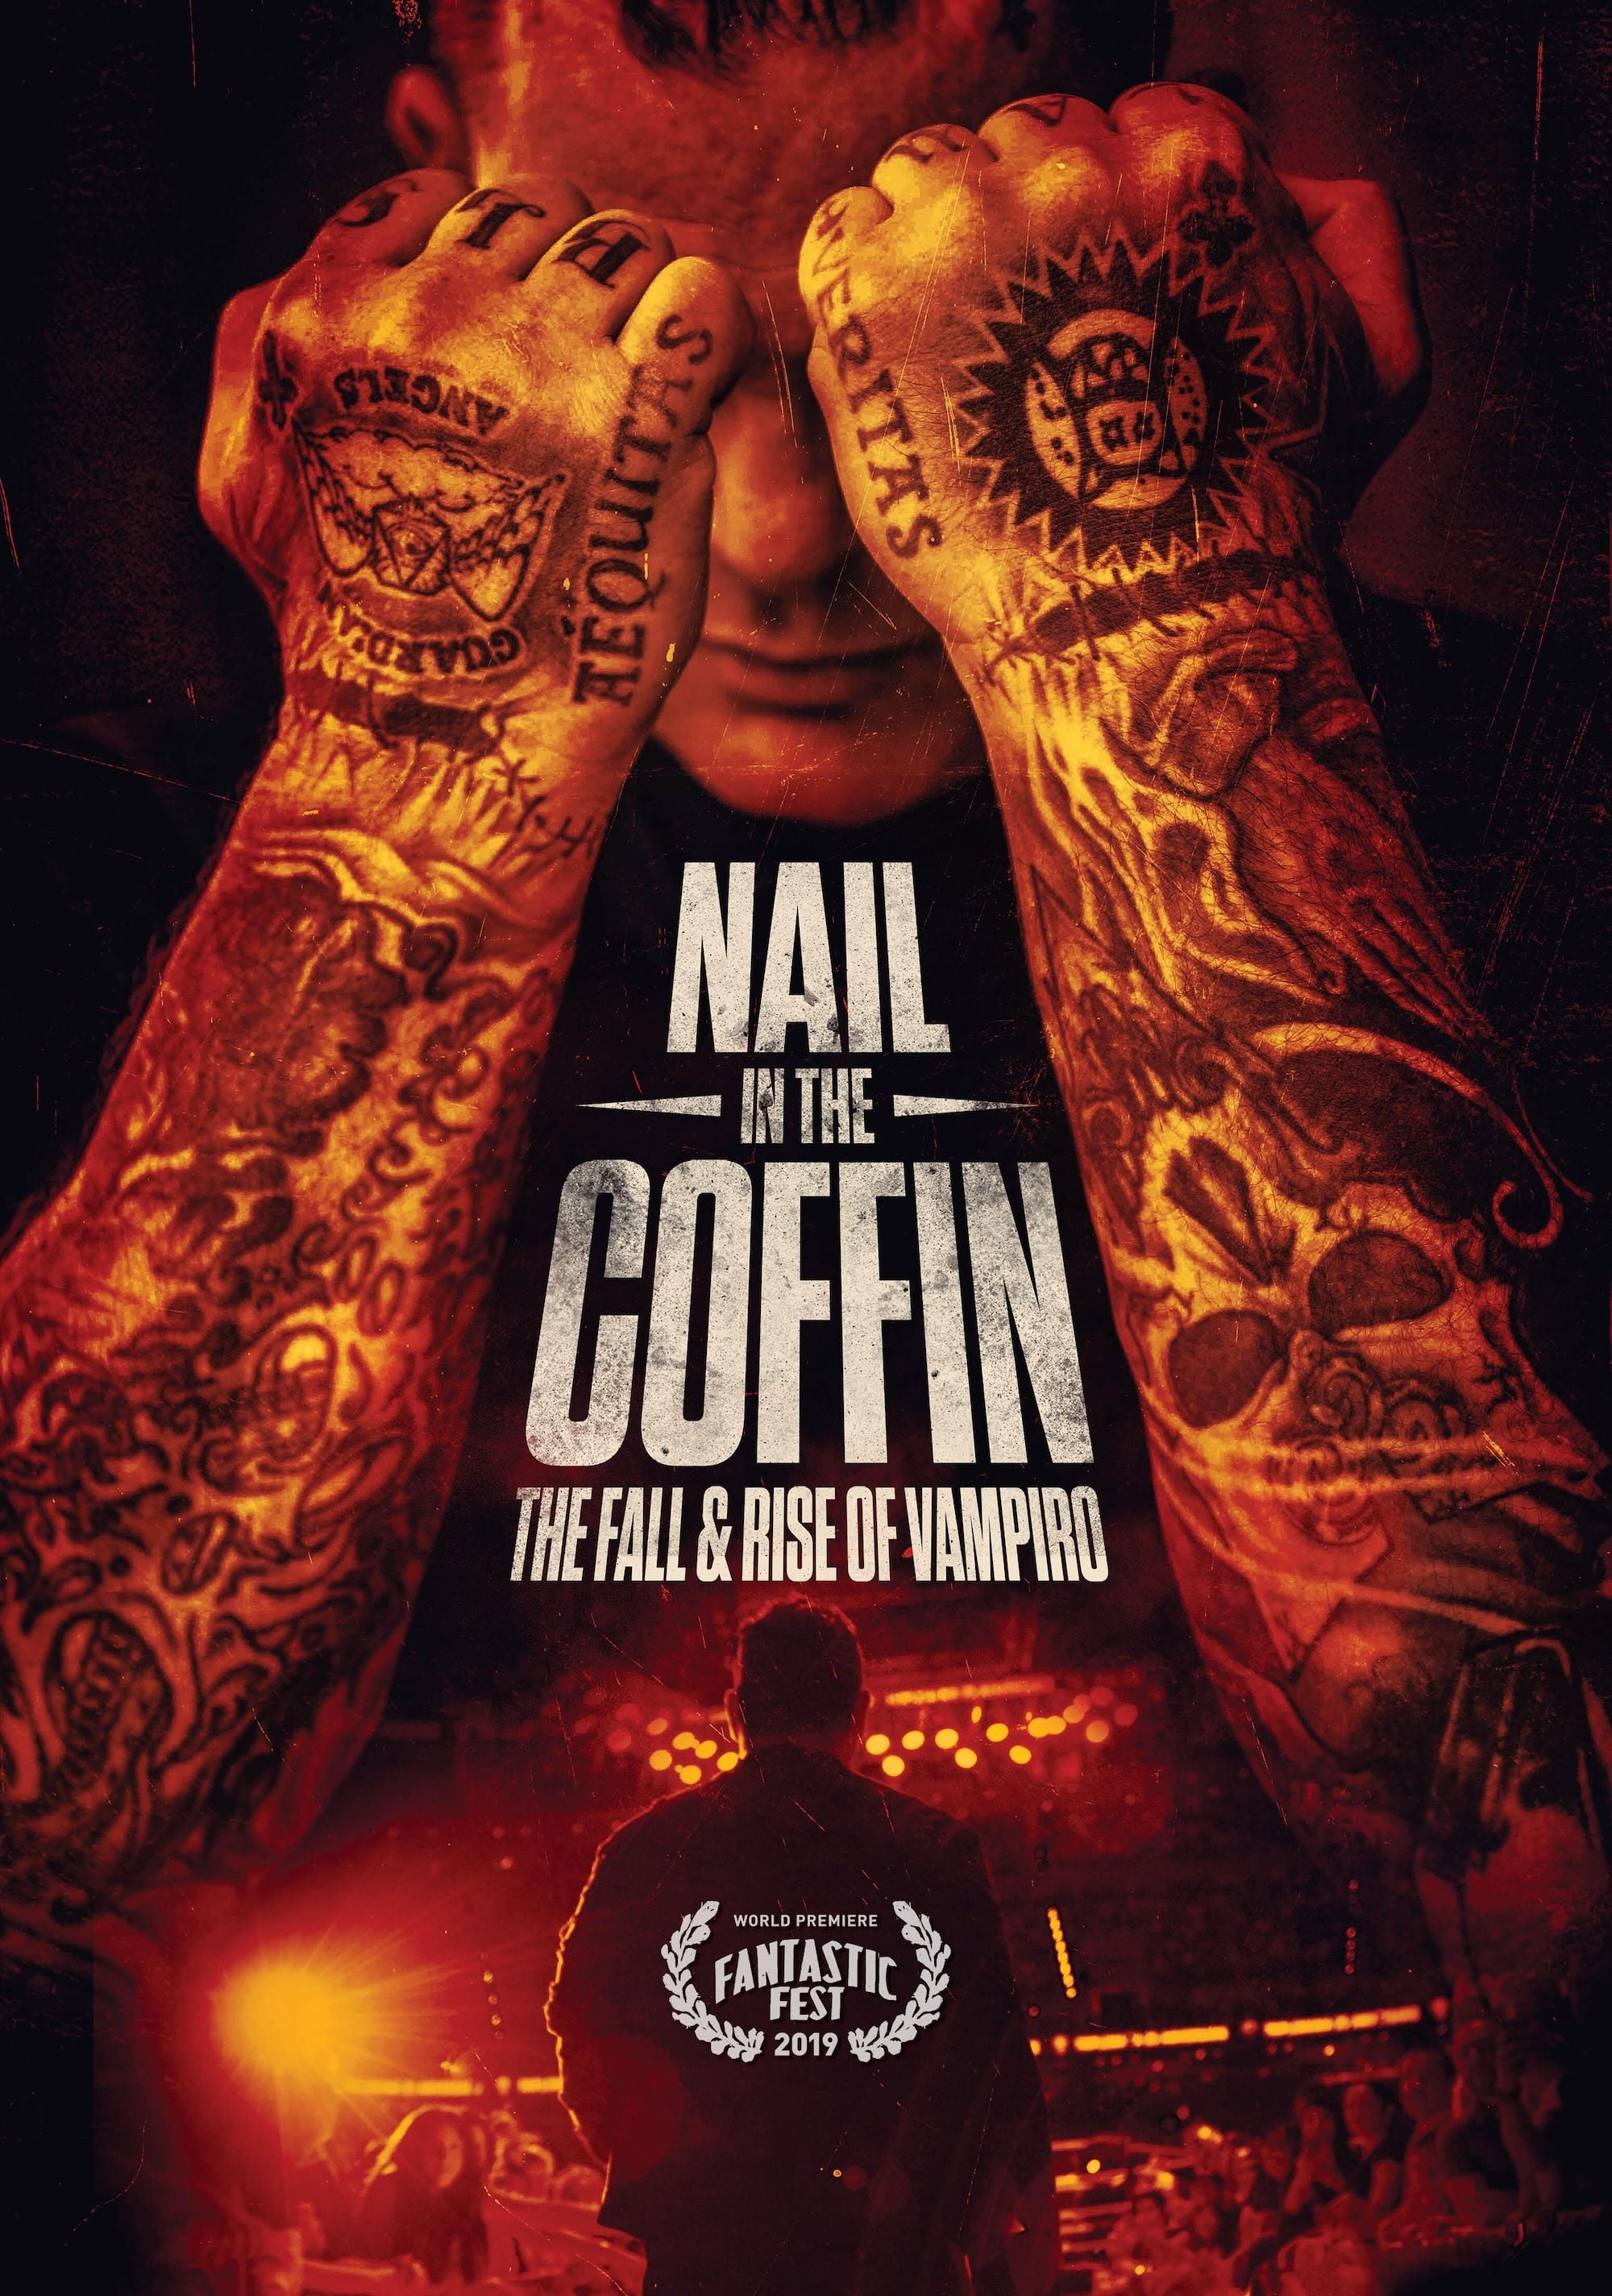 Nail in the Coffin: The Fall and Rise of Vampiro